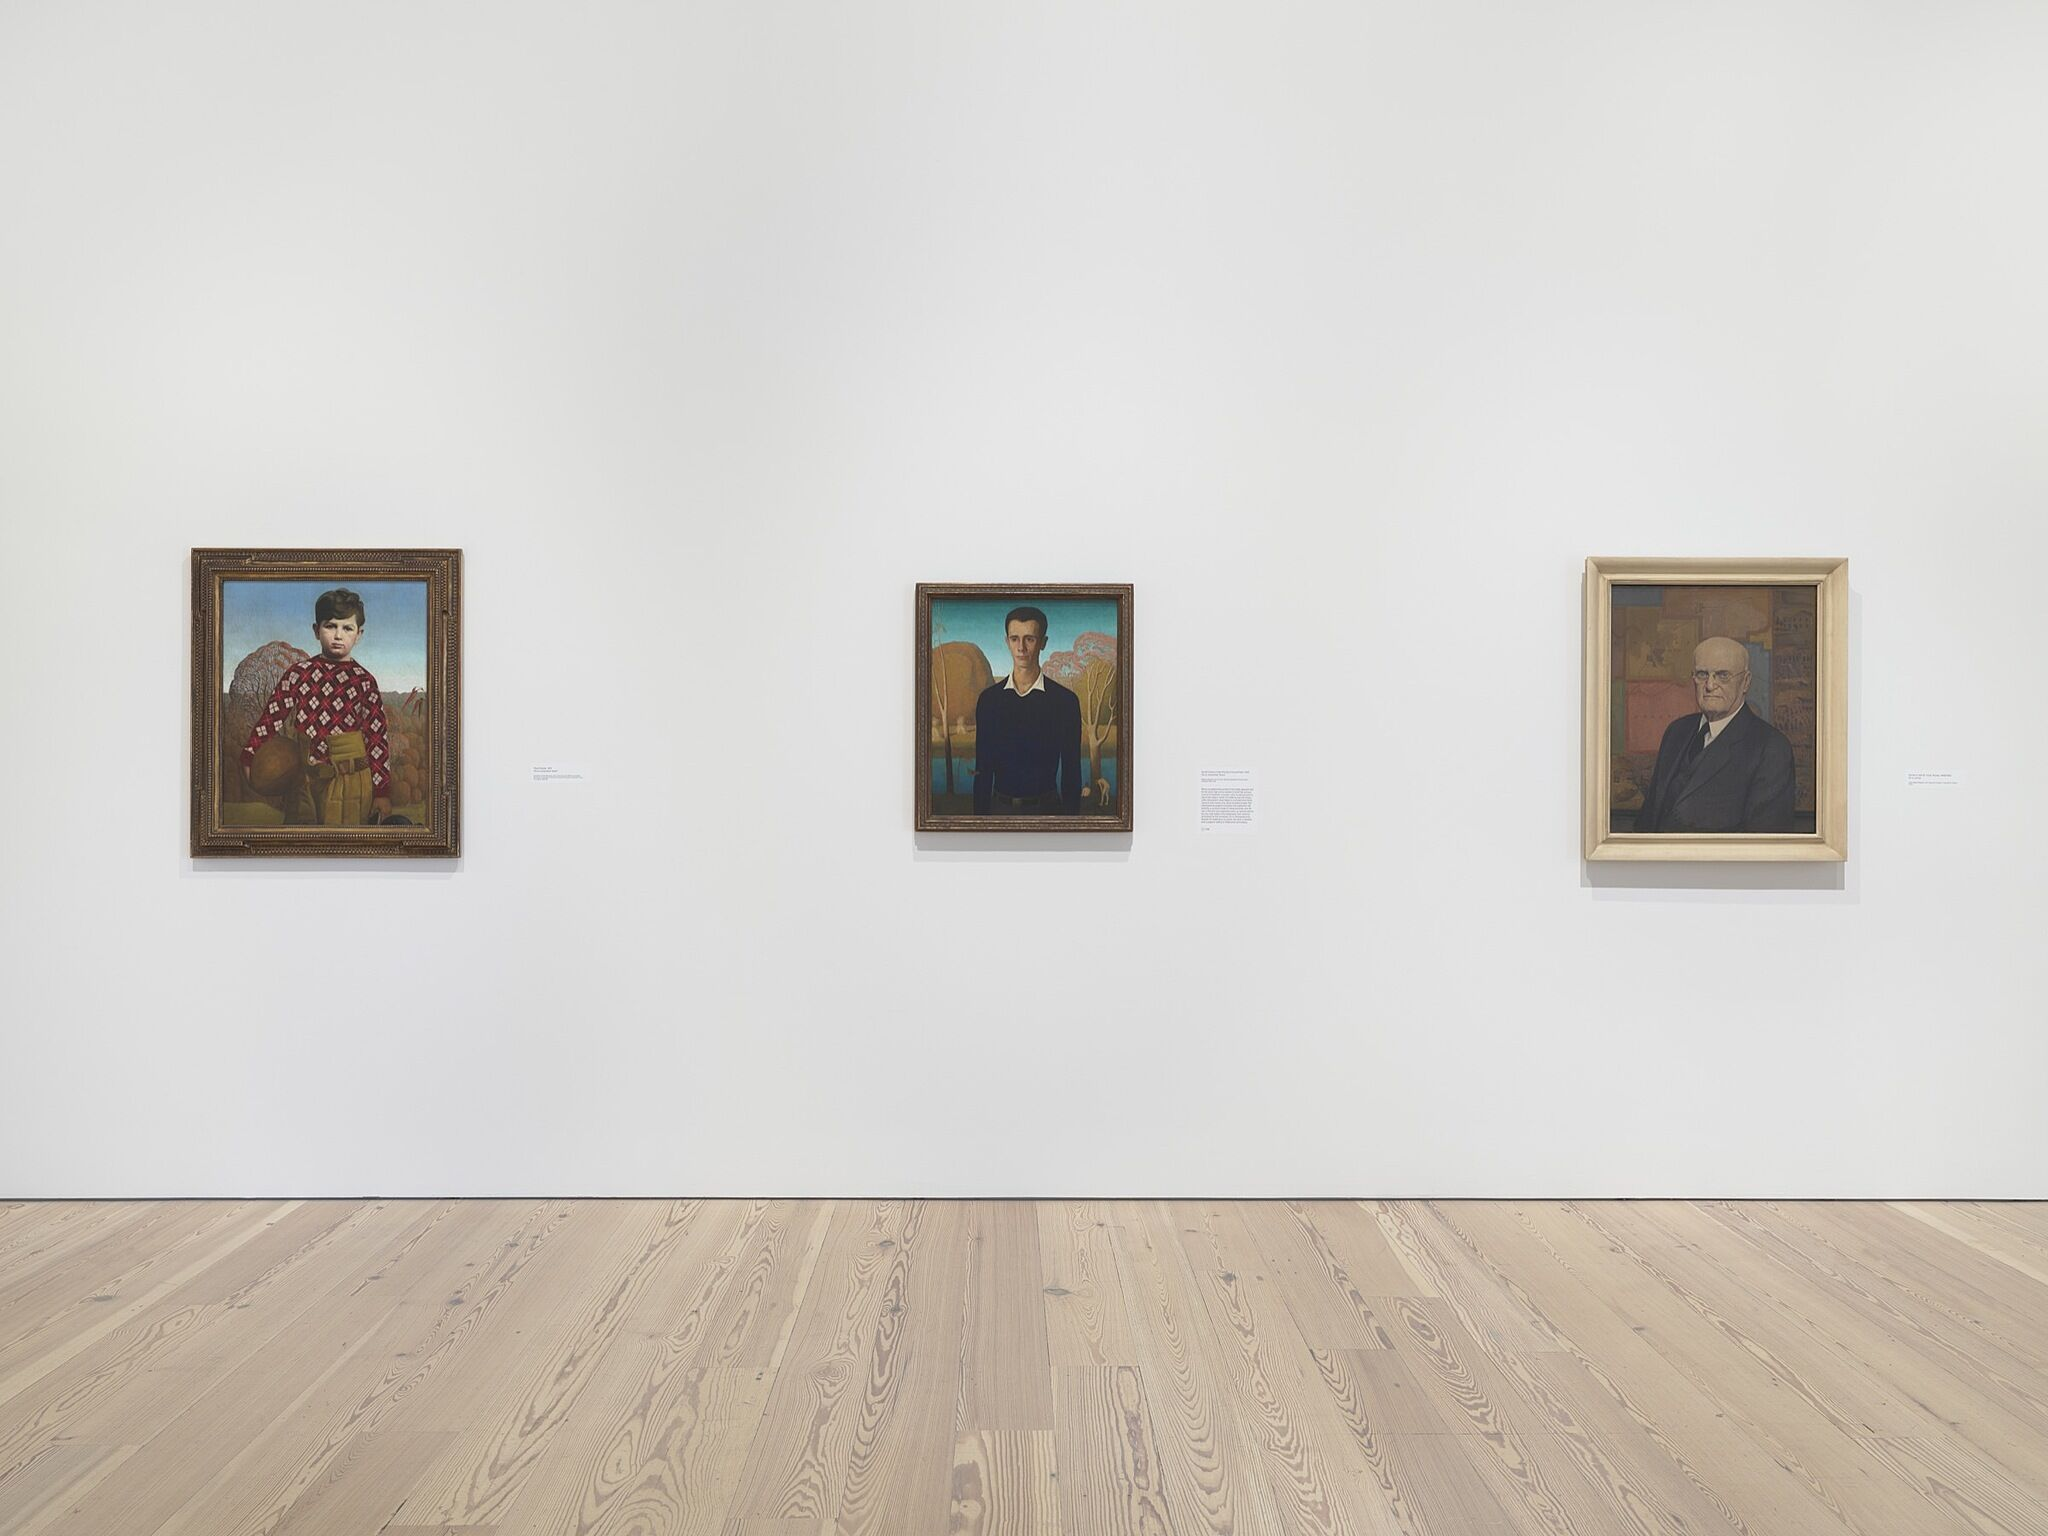 Three paintings in a white-walled gallery.